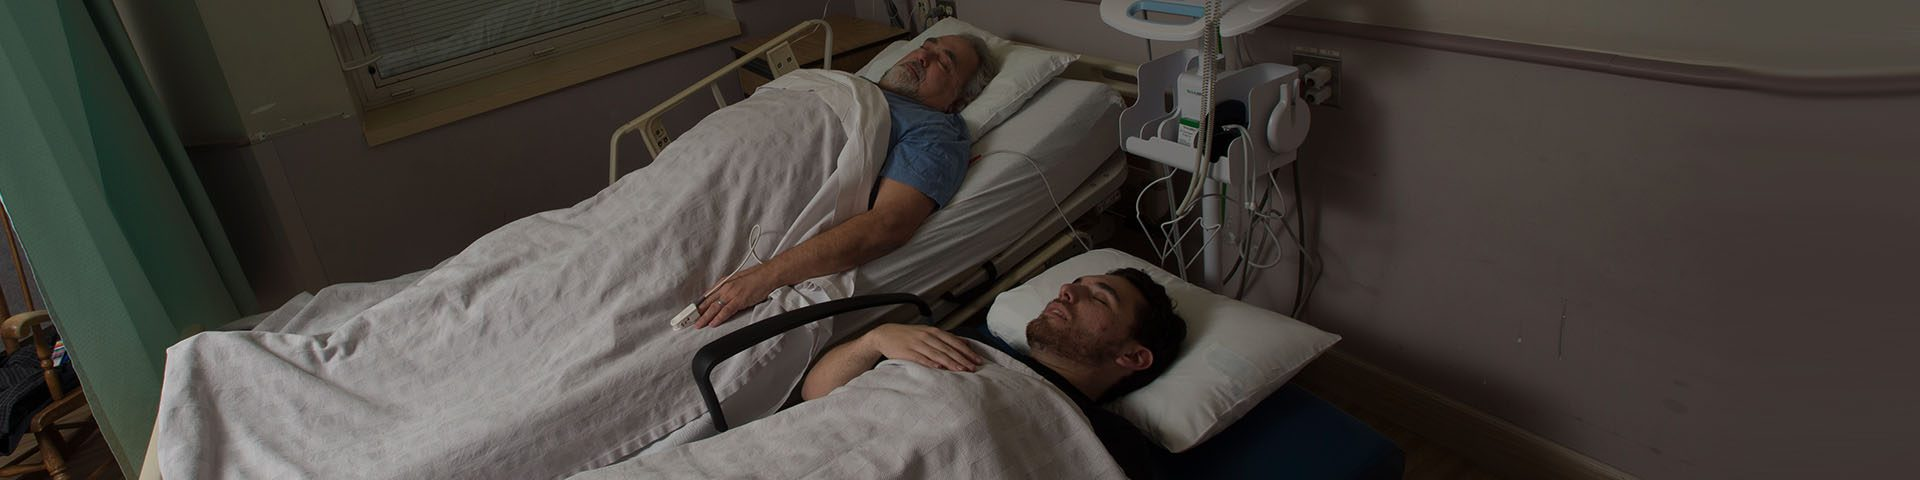 Father in hospital with son sleeping beside in sleeper chair